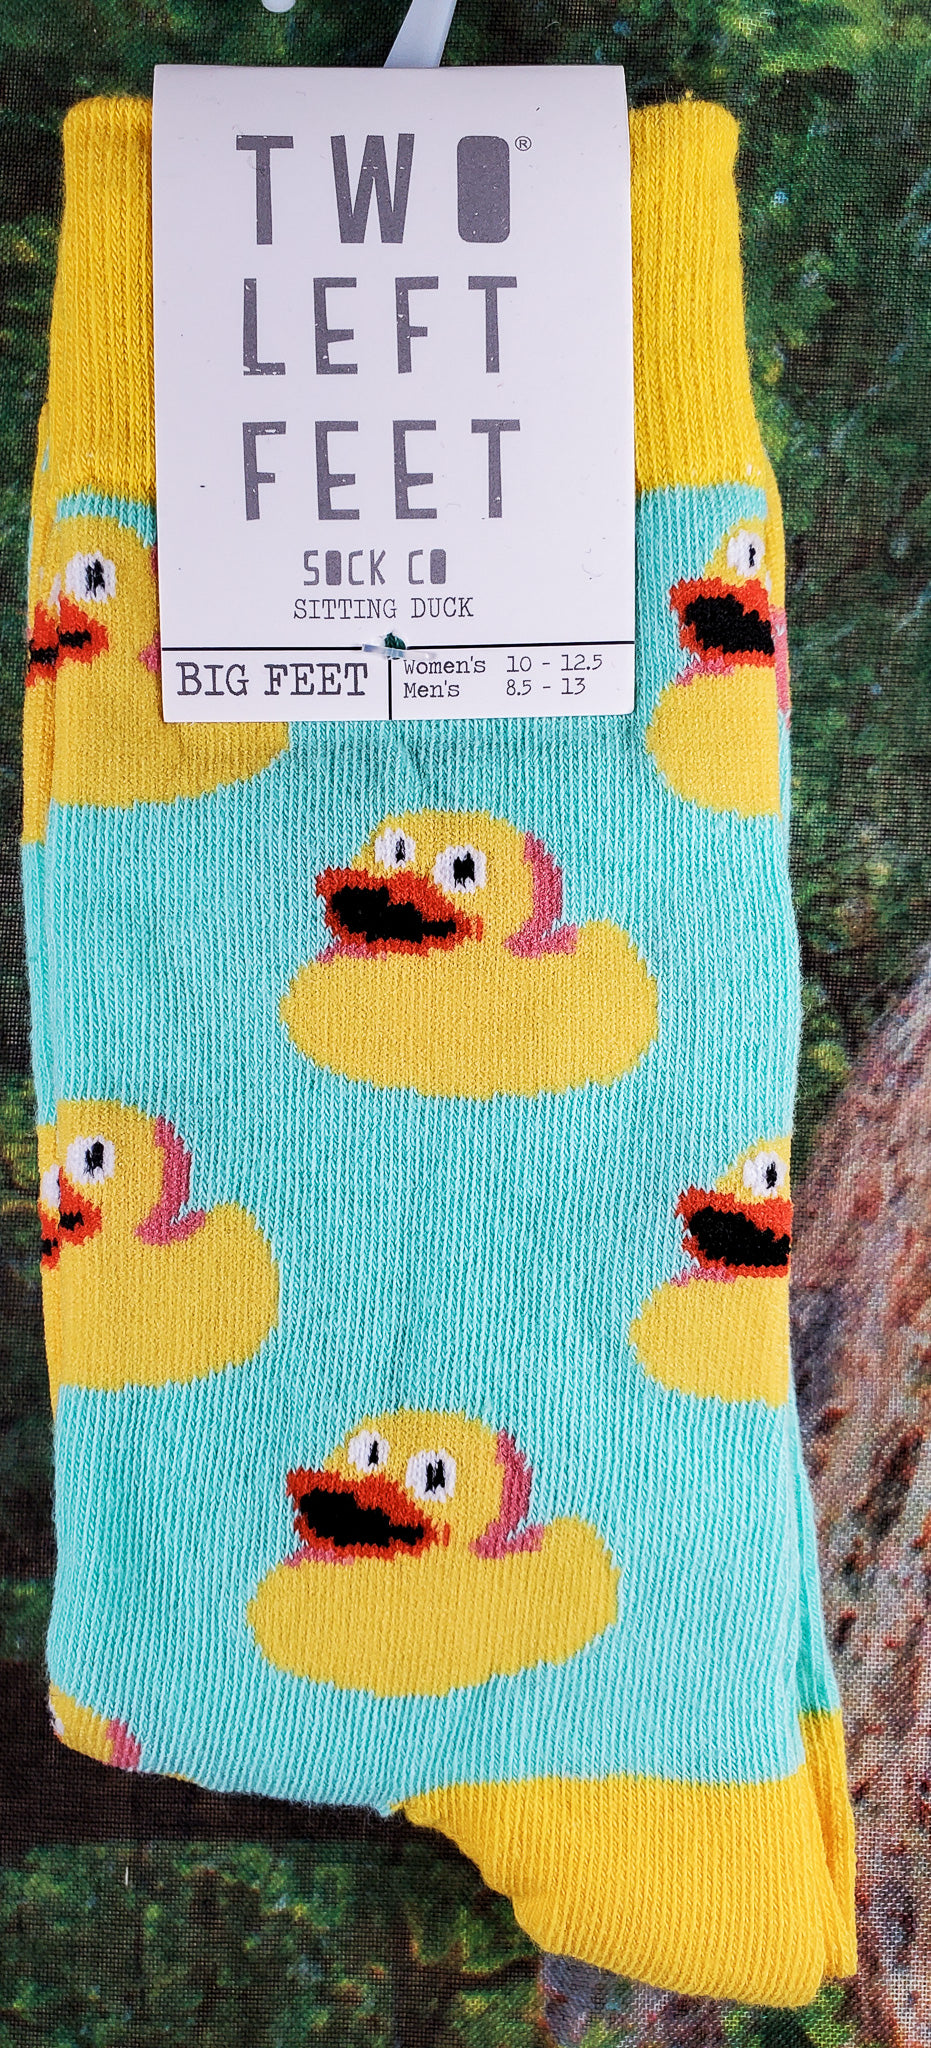 Sitting Duck - Crew Socks